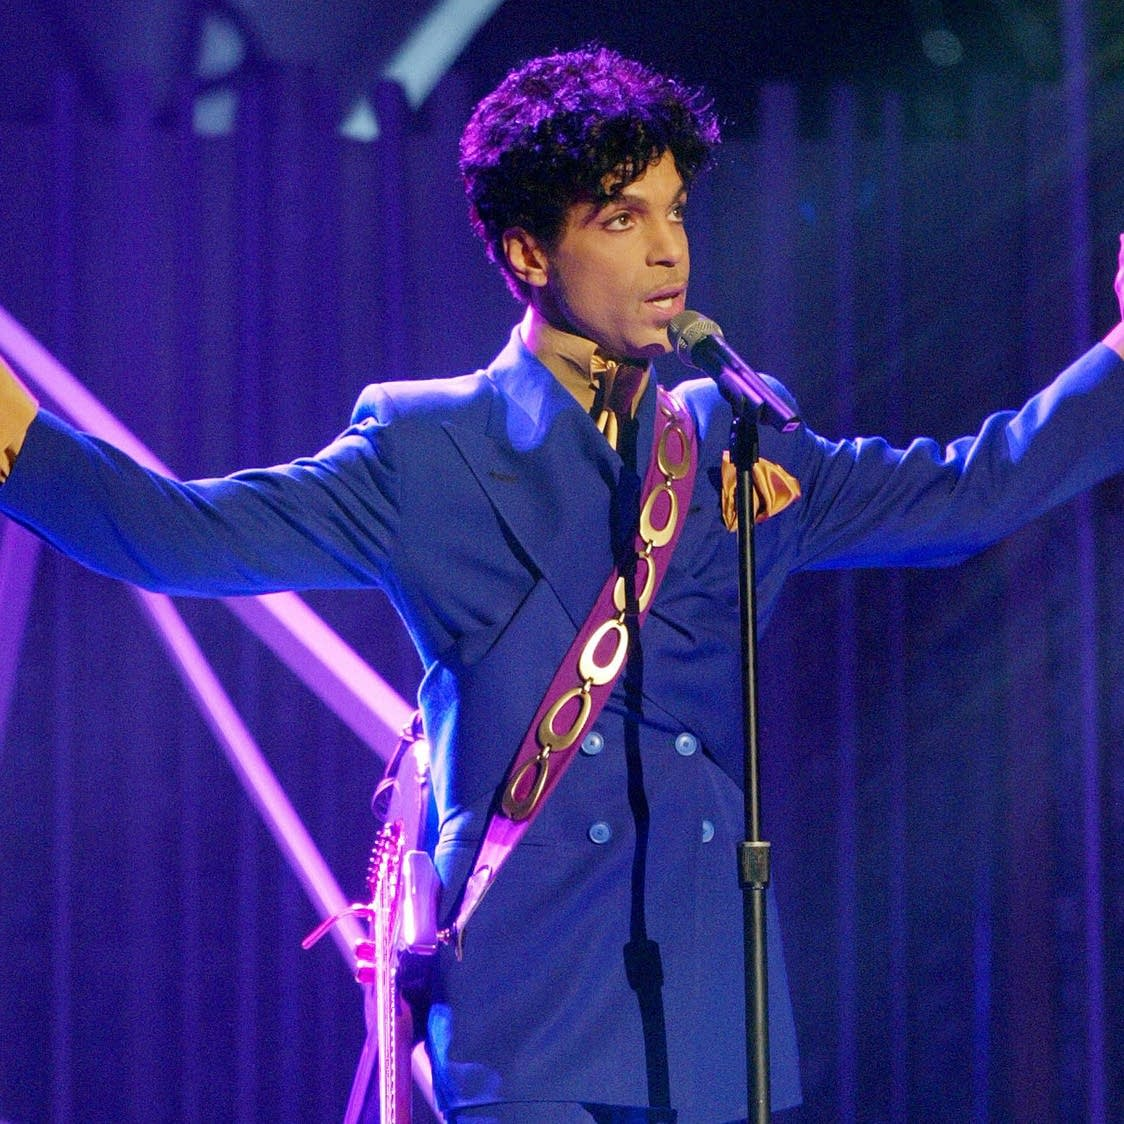 Prince onstage